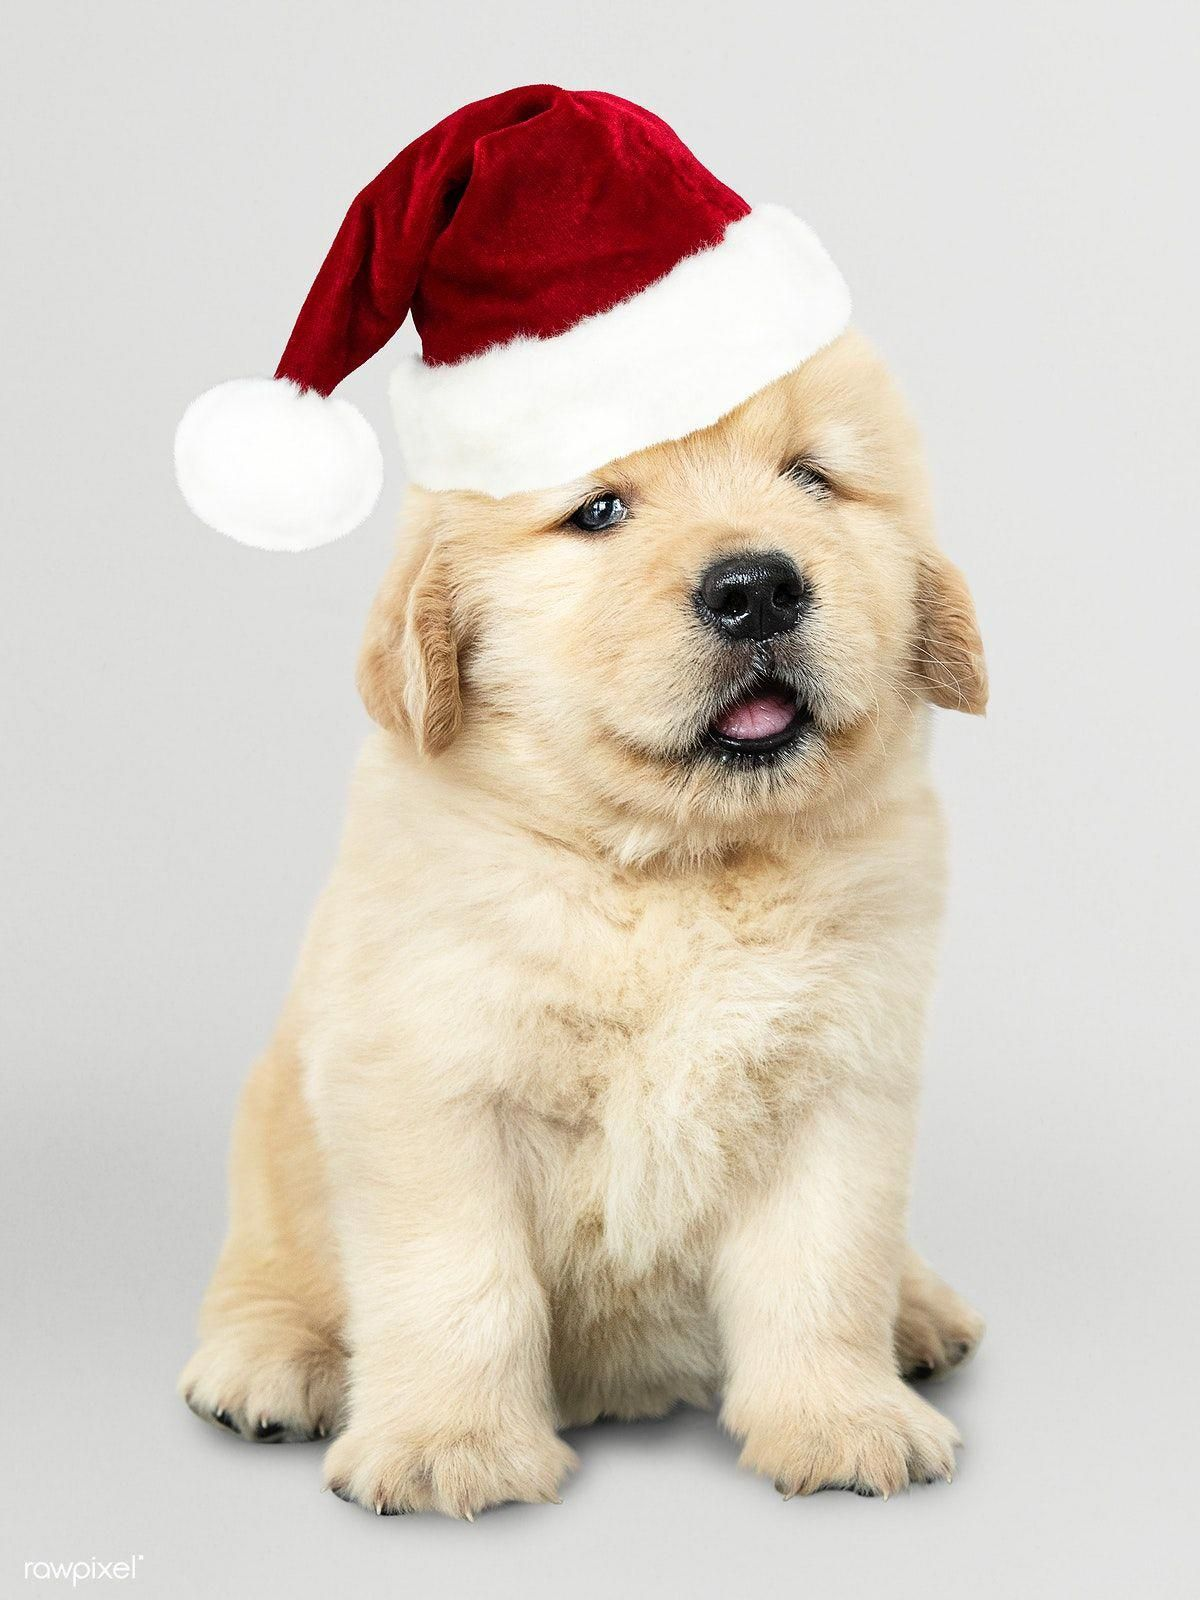 Find Out More On The Friendly Golden Retriever Puppies